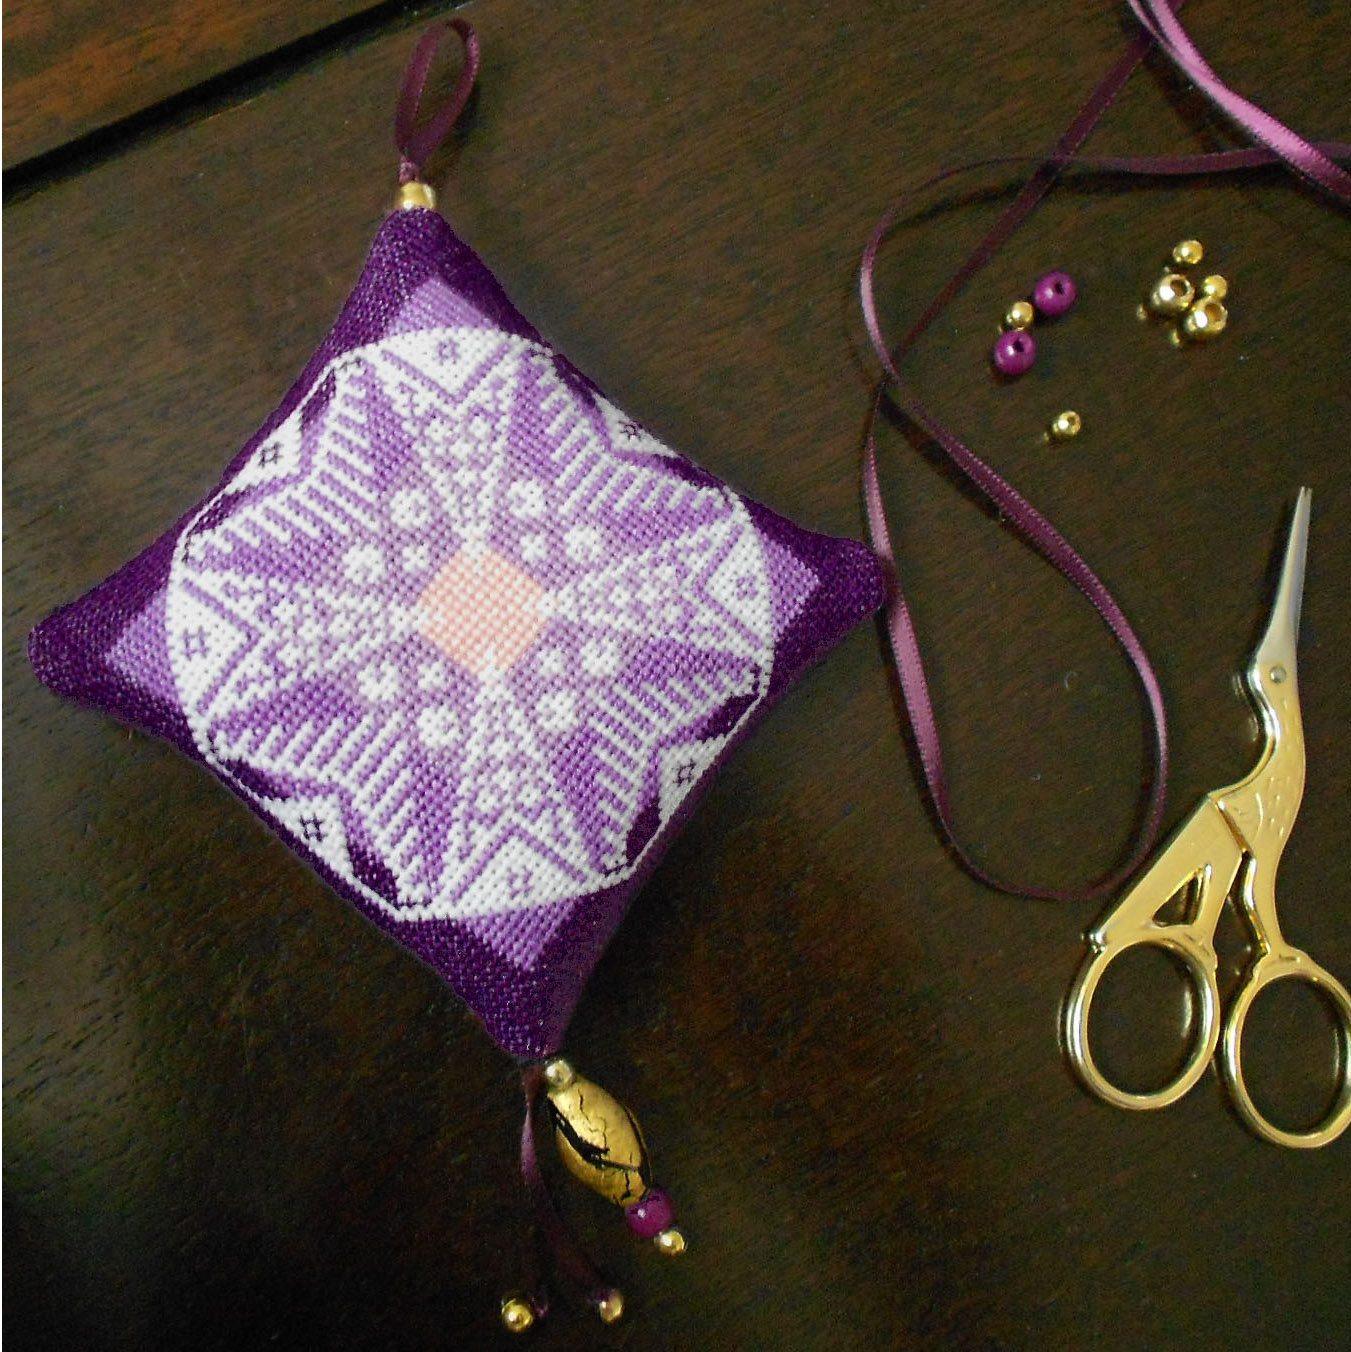 Jewel-like Finishing Tutorial for stitched Ornaments